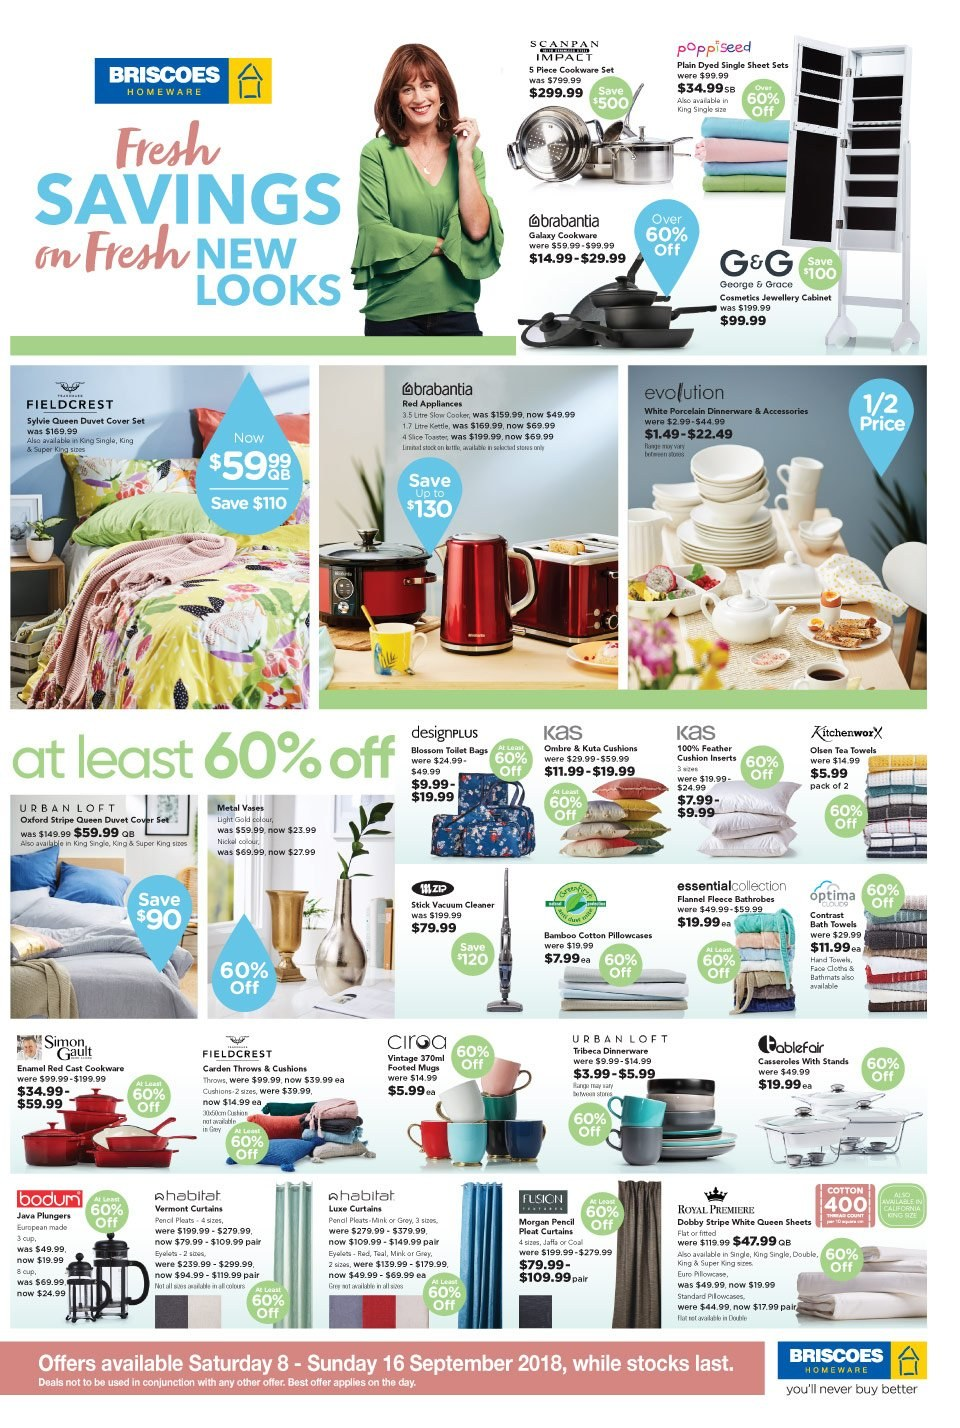 Briscoes mailer - 08.09.2018 - 16.09.2018 - Sales products - cushion, vase, cookware set, dinnerware set, tea towels, duvet, sheet, pillowcases, curtains, quilt cover set, towel, vacuum cleaner, kettle, cleaner, Samsung Galaxy, Blossom. Page 1.